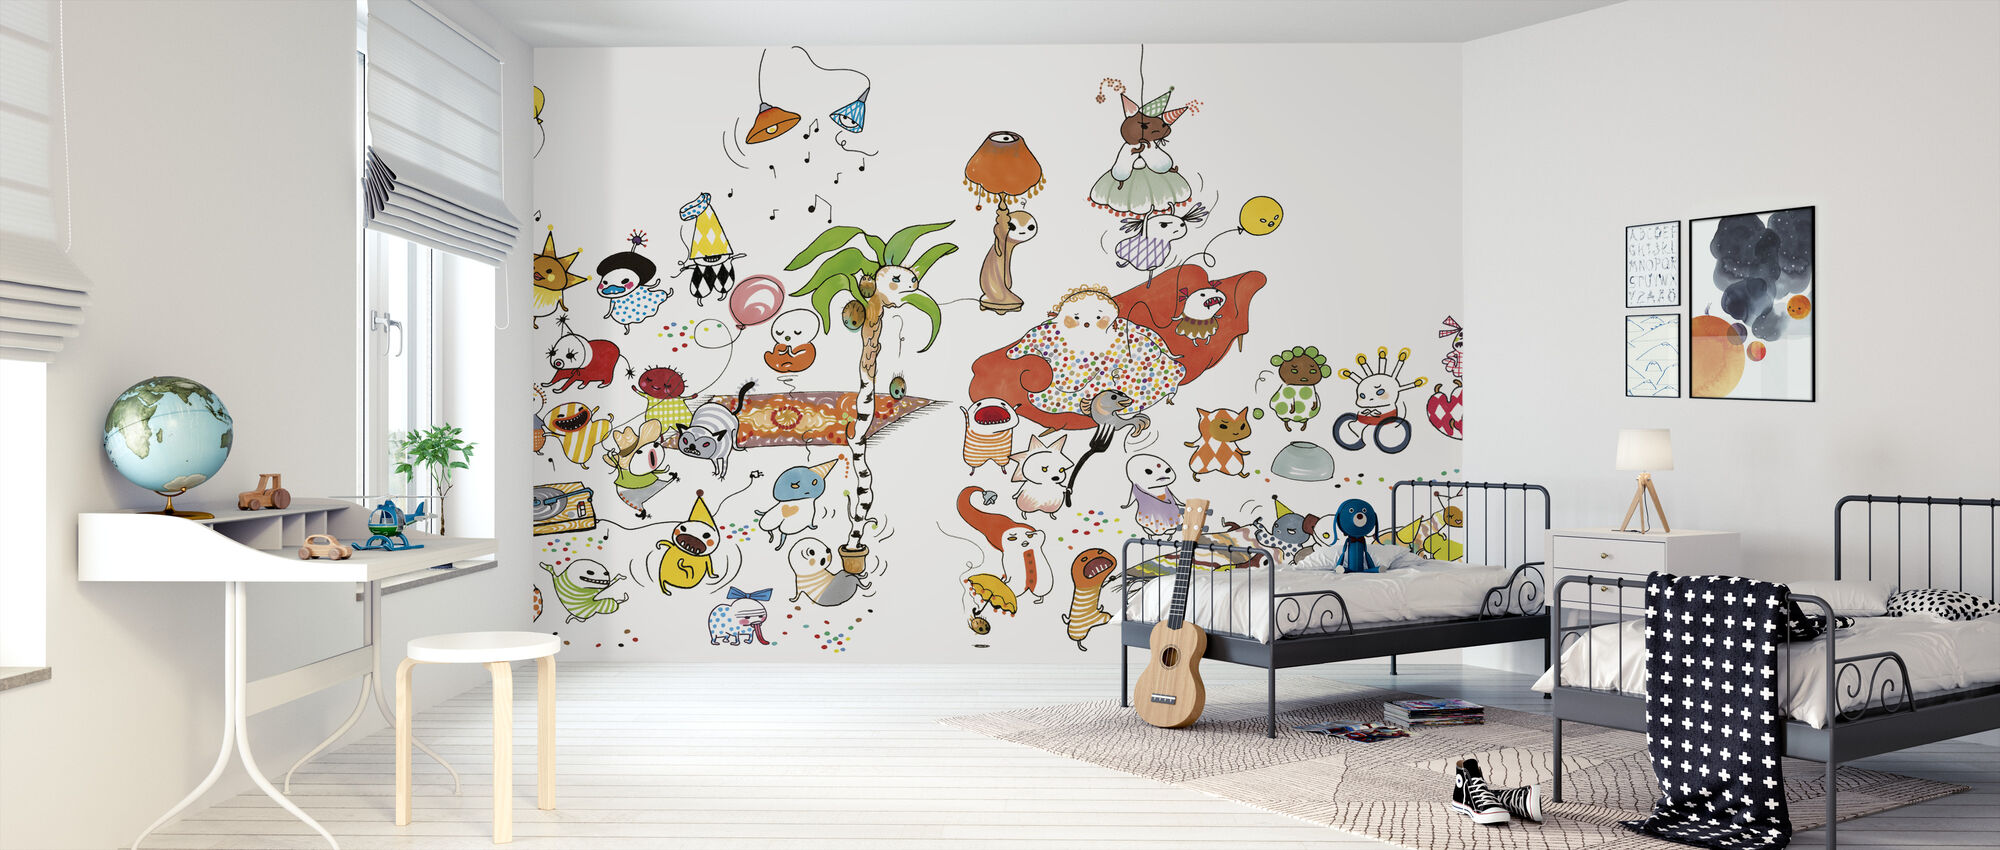 Fest XL - Wallpaper - Kids Room